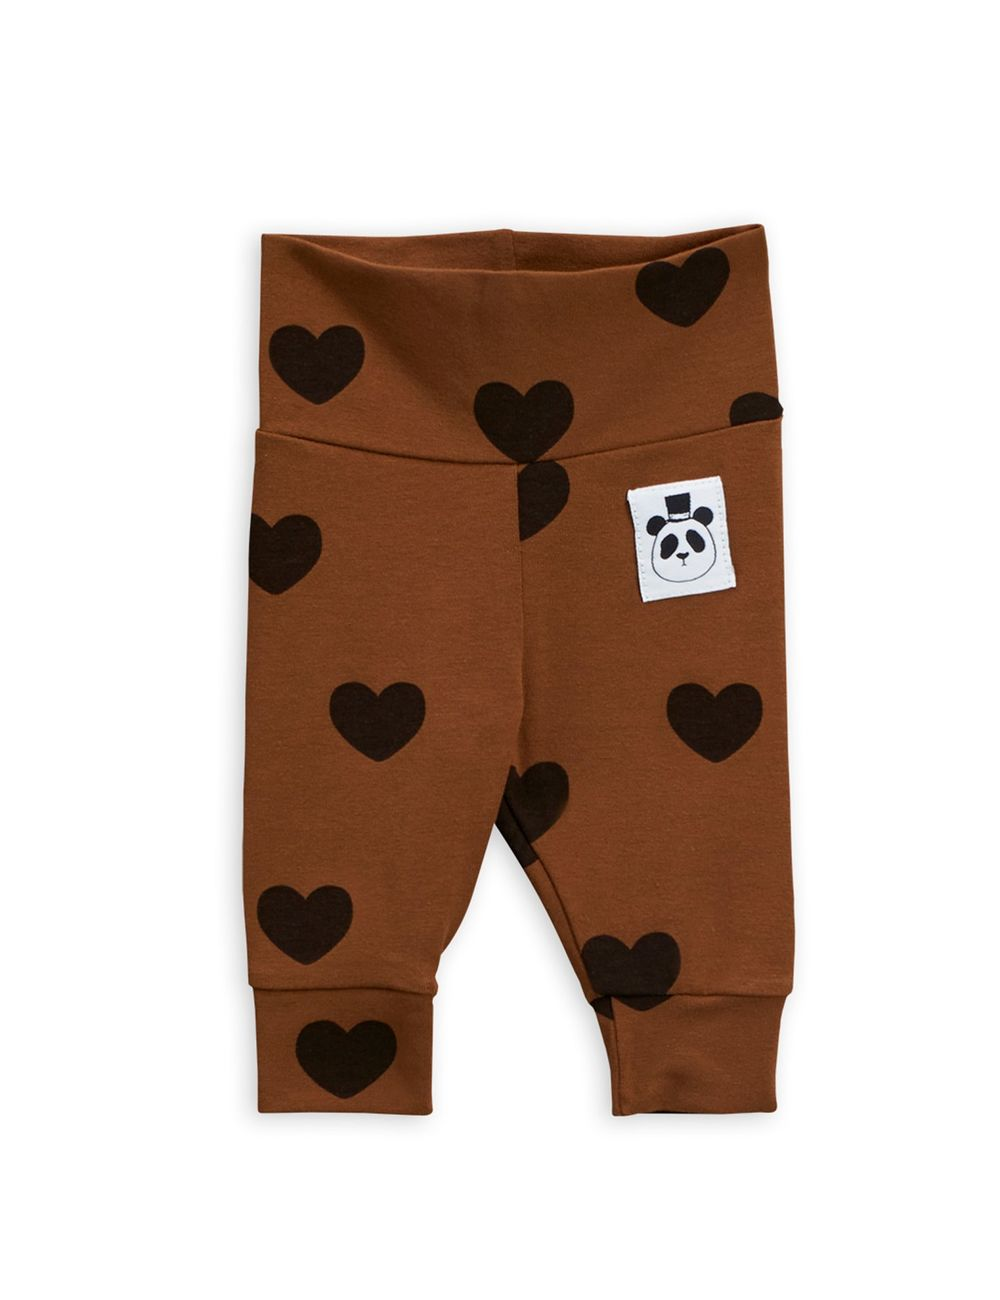 MINI RODINI HEARTS NB LEGGINGS, BROWN